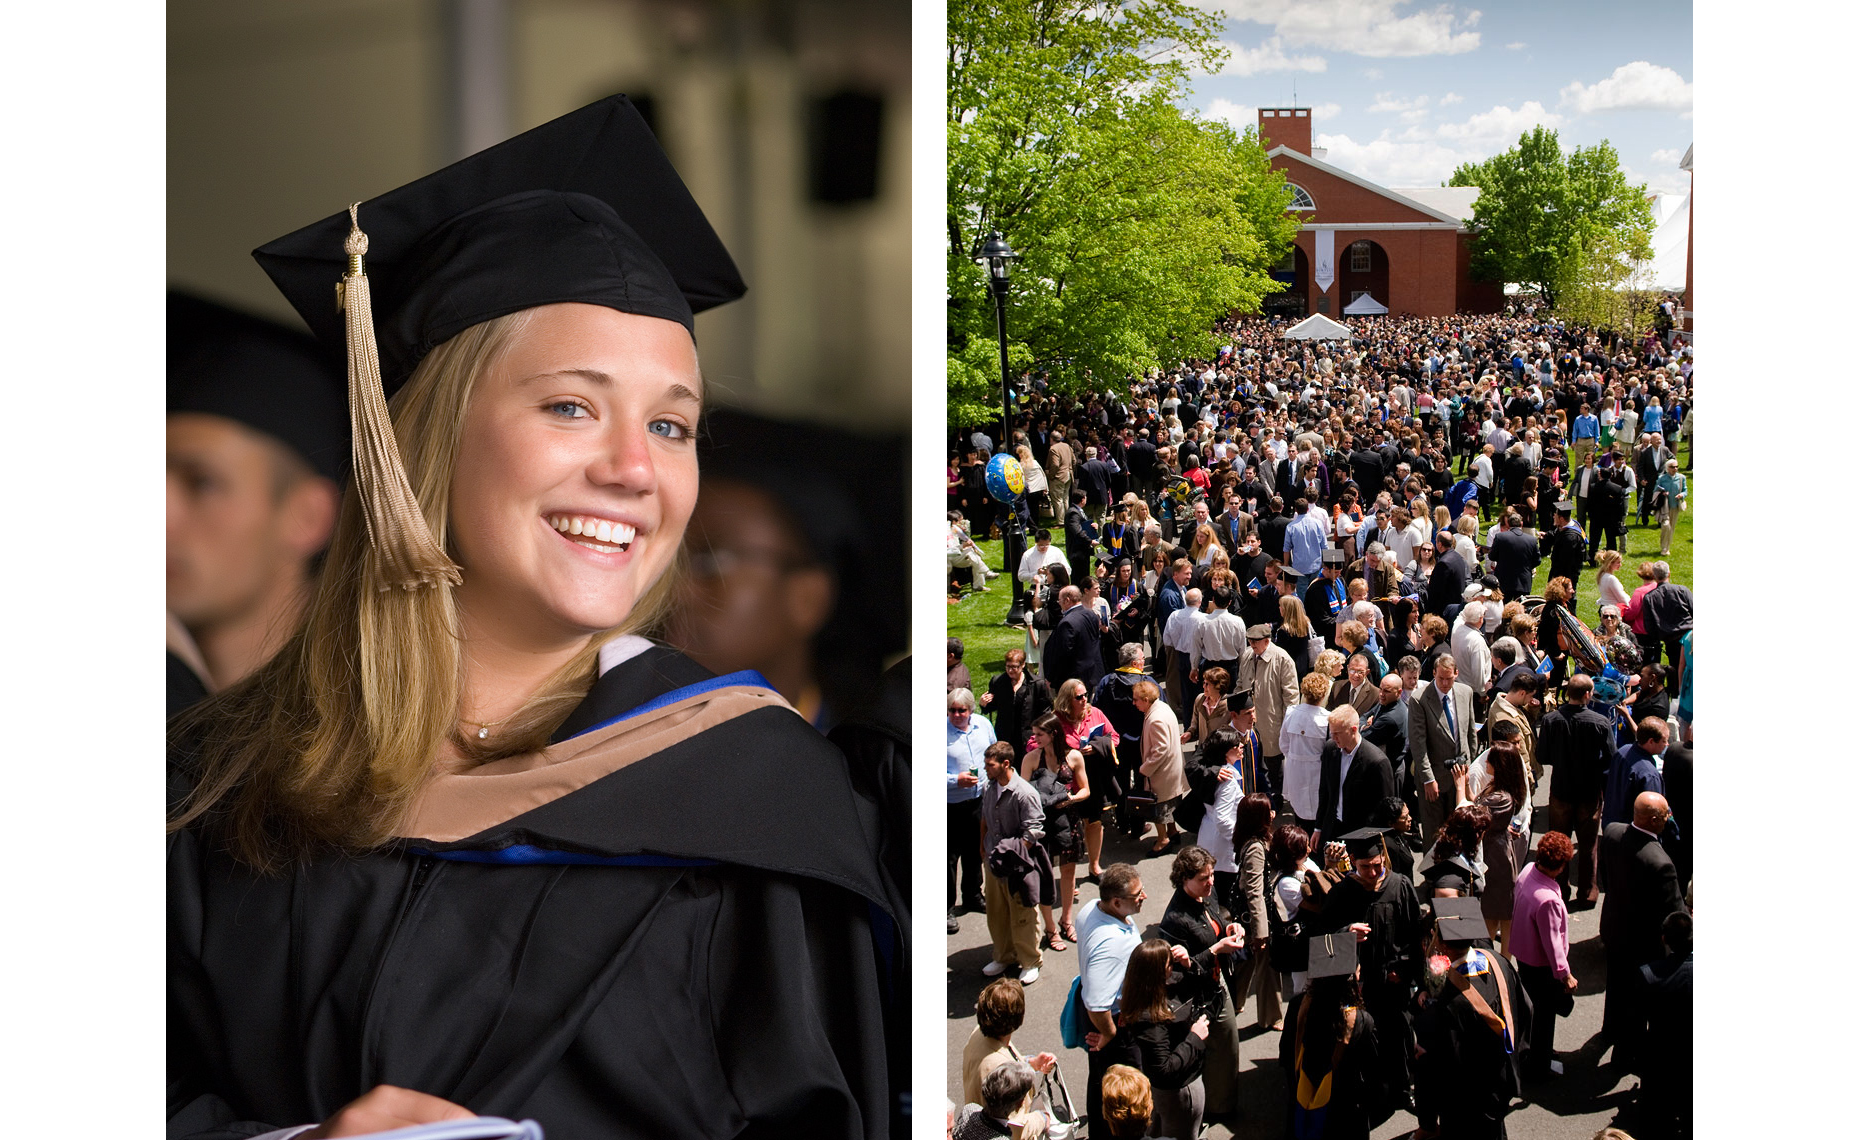 female student in cap and gown and crowds after graduation